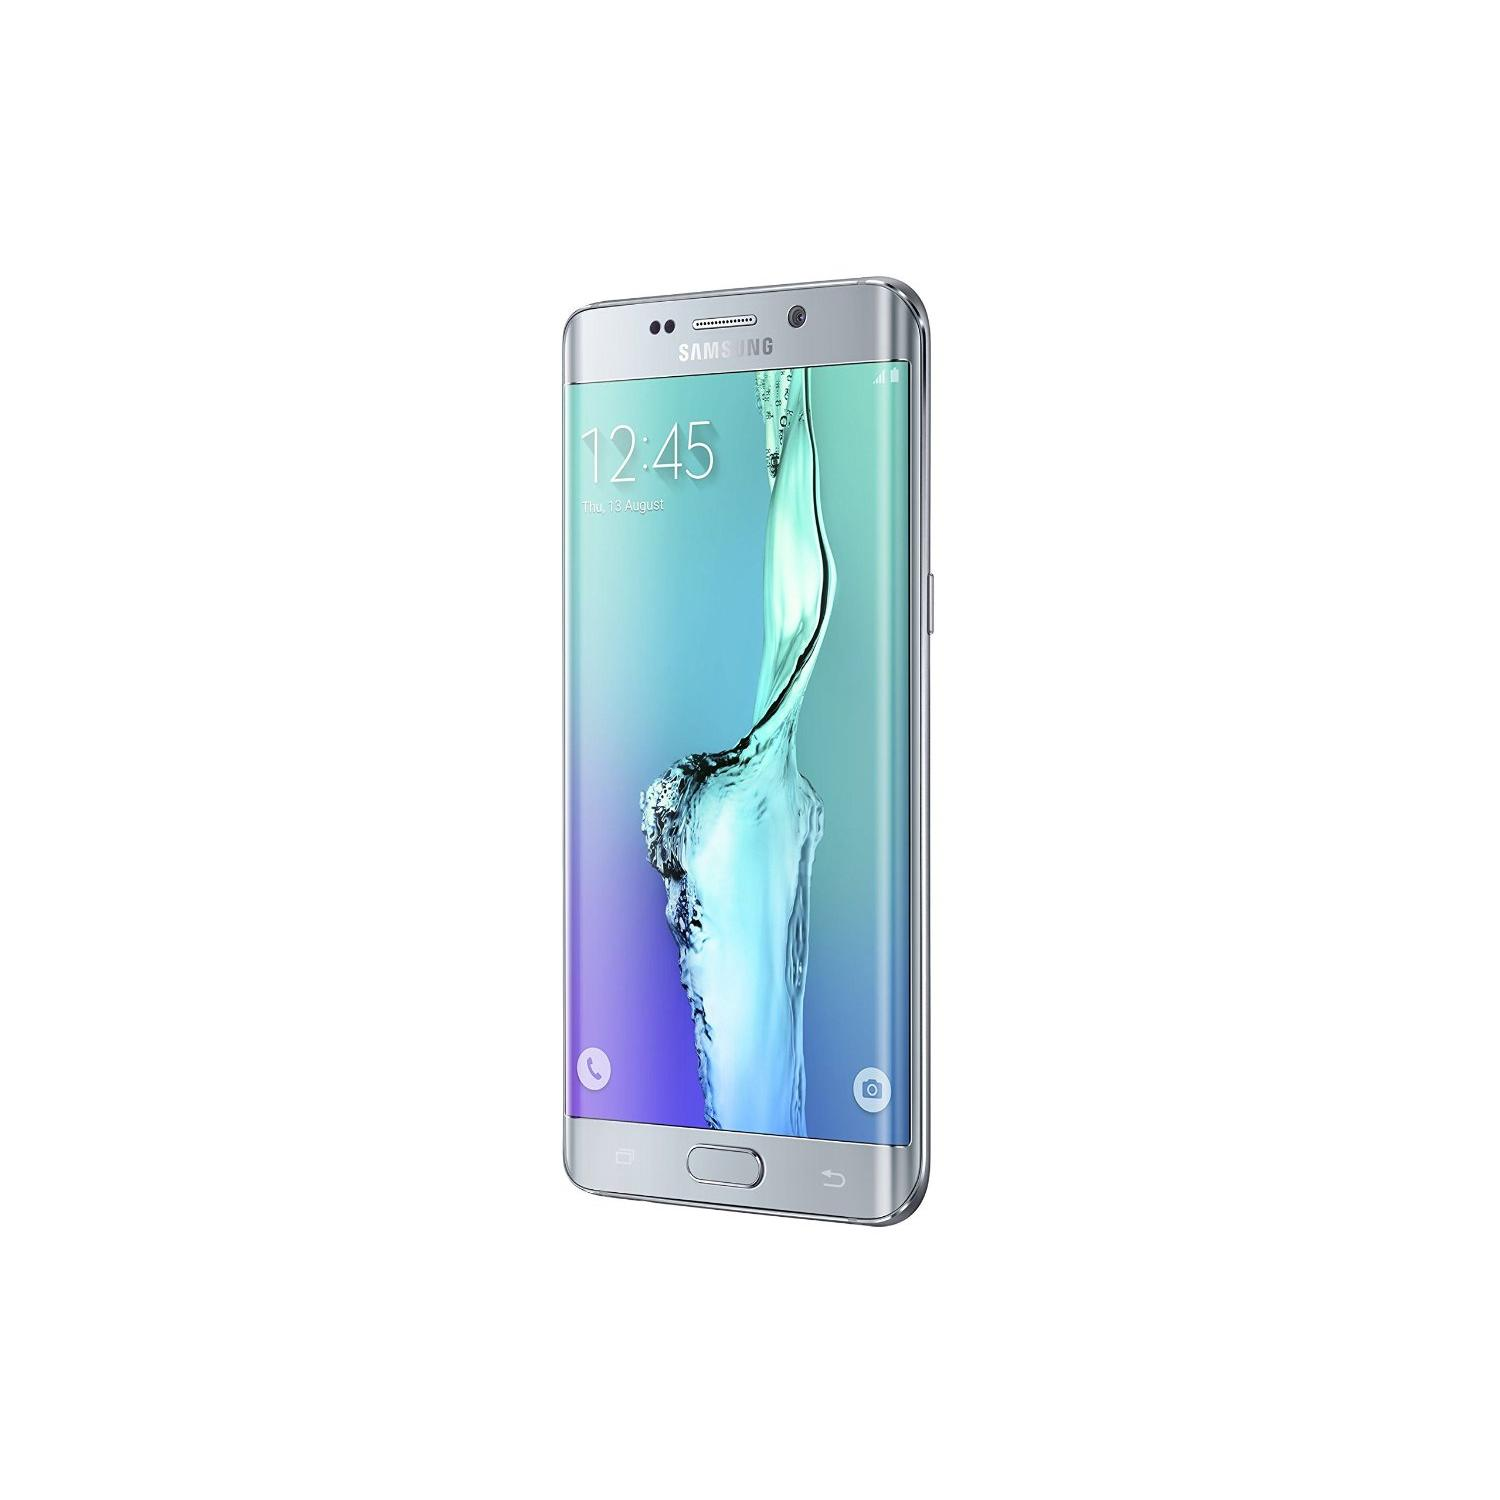 galaxy s6 edge plus 64 go argent d bloqu reconditionn back market. Black Bedroom Furniture Sets. Home Design Ideas